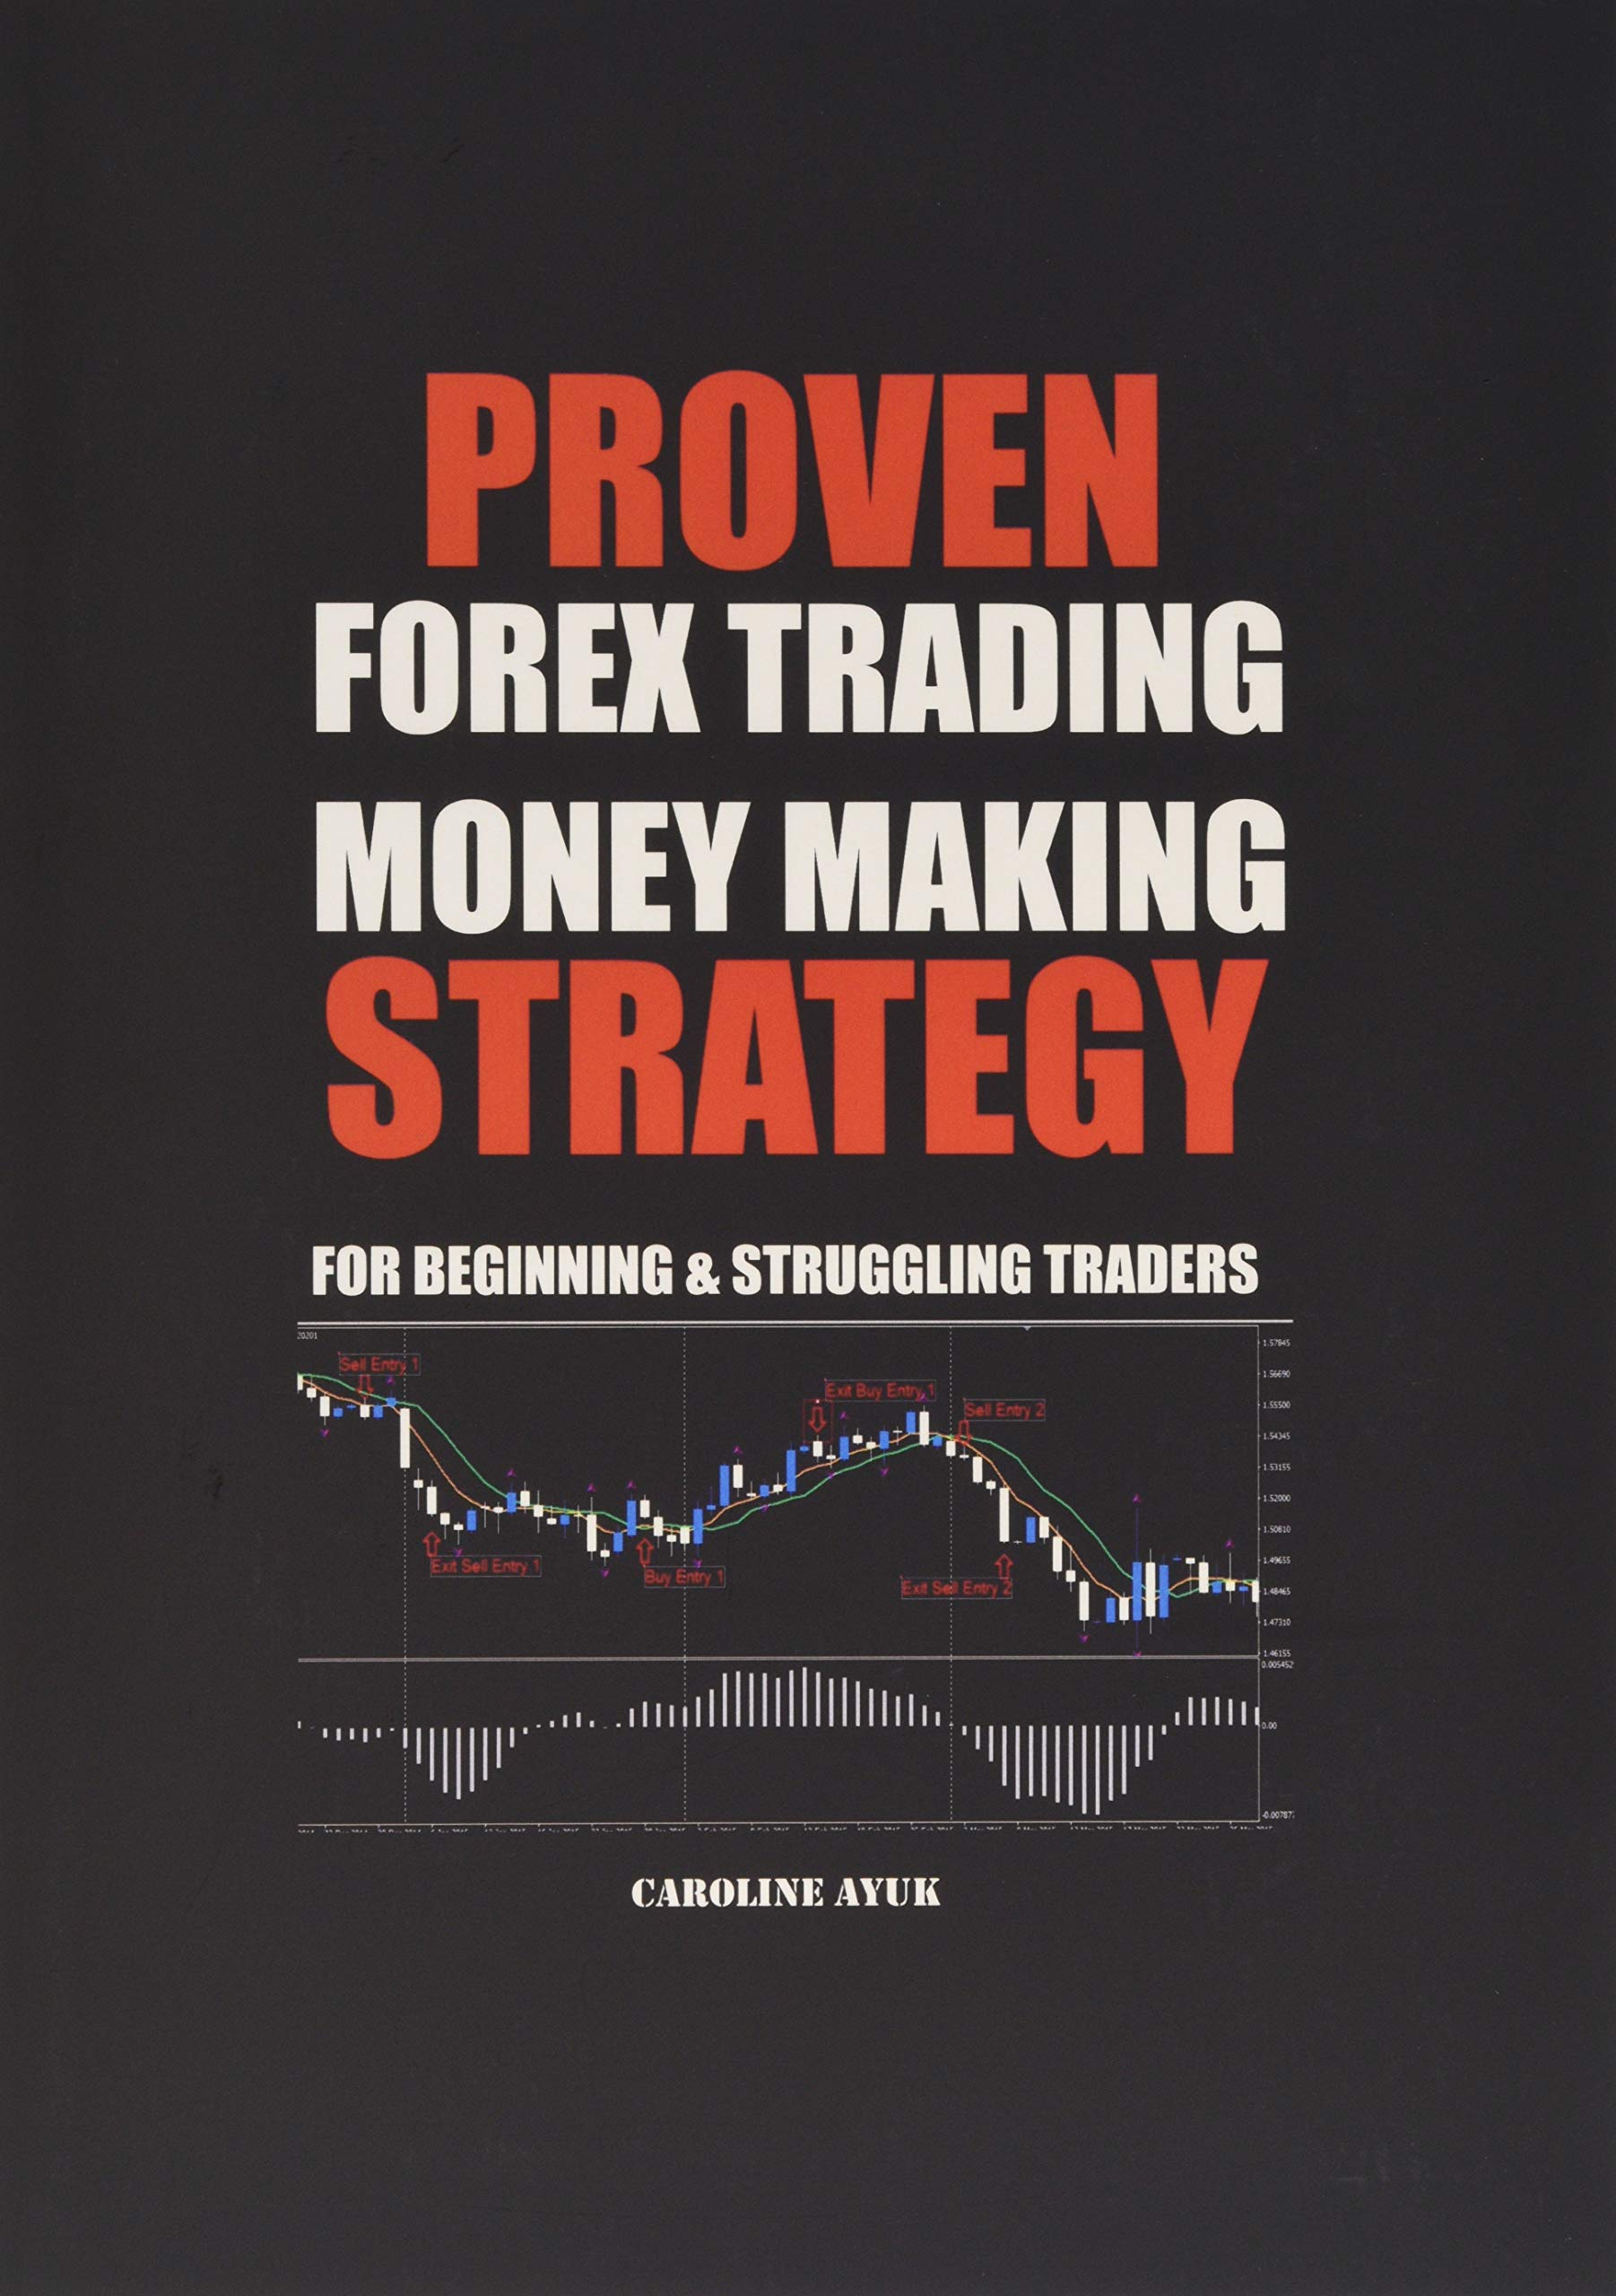 PROVEN FOREX TRADING MONEY MAKING STRATEGY - For Beginning and Struggling Traders PDF